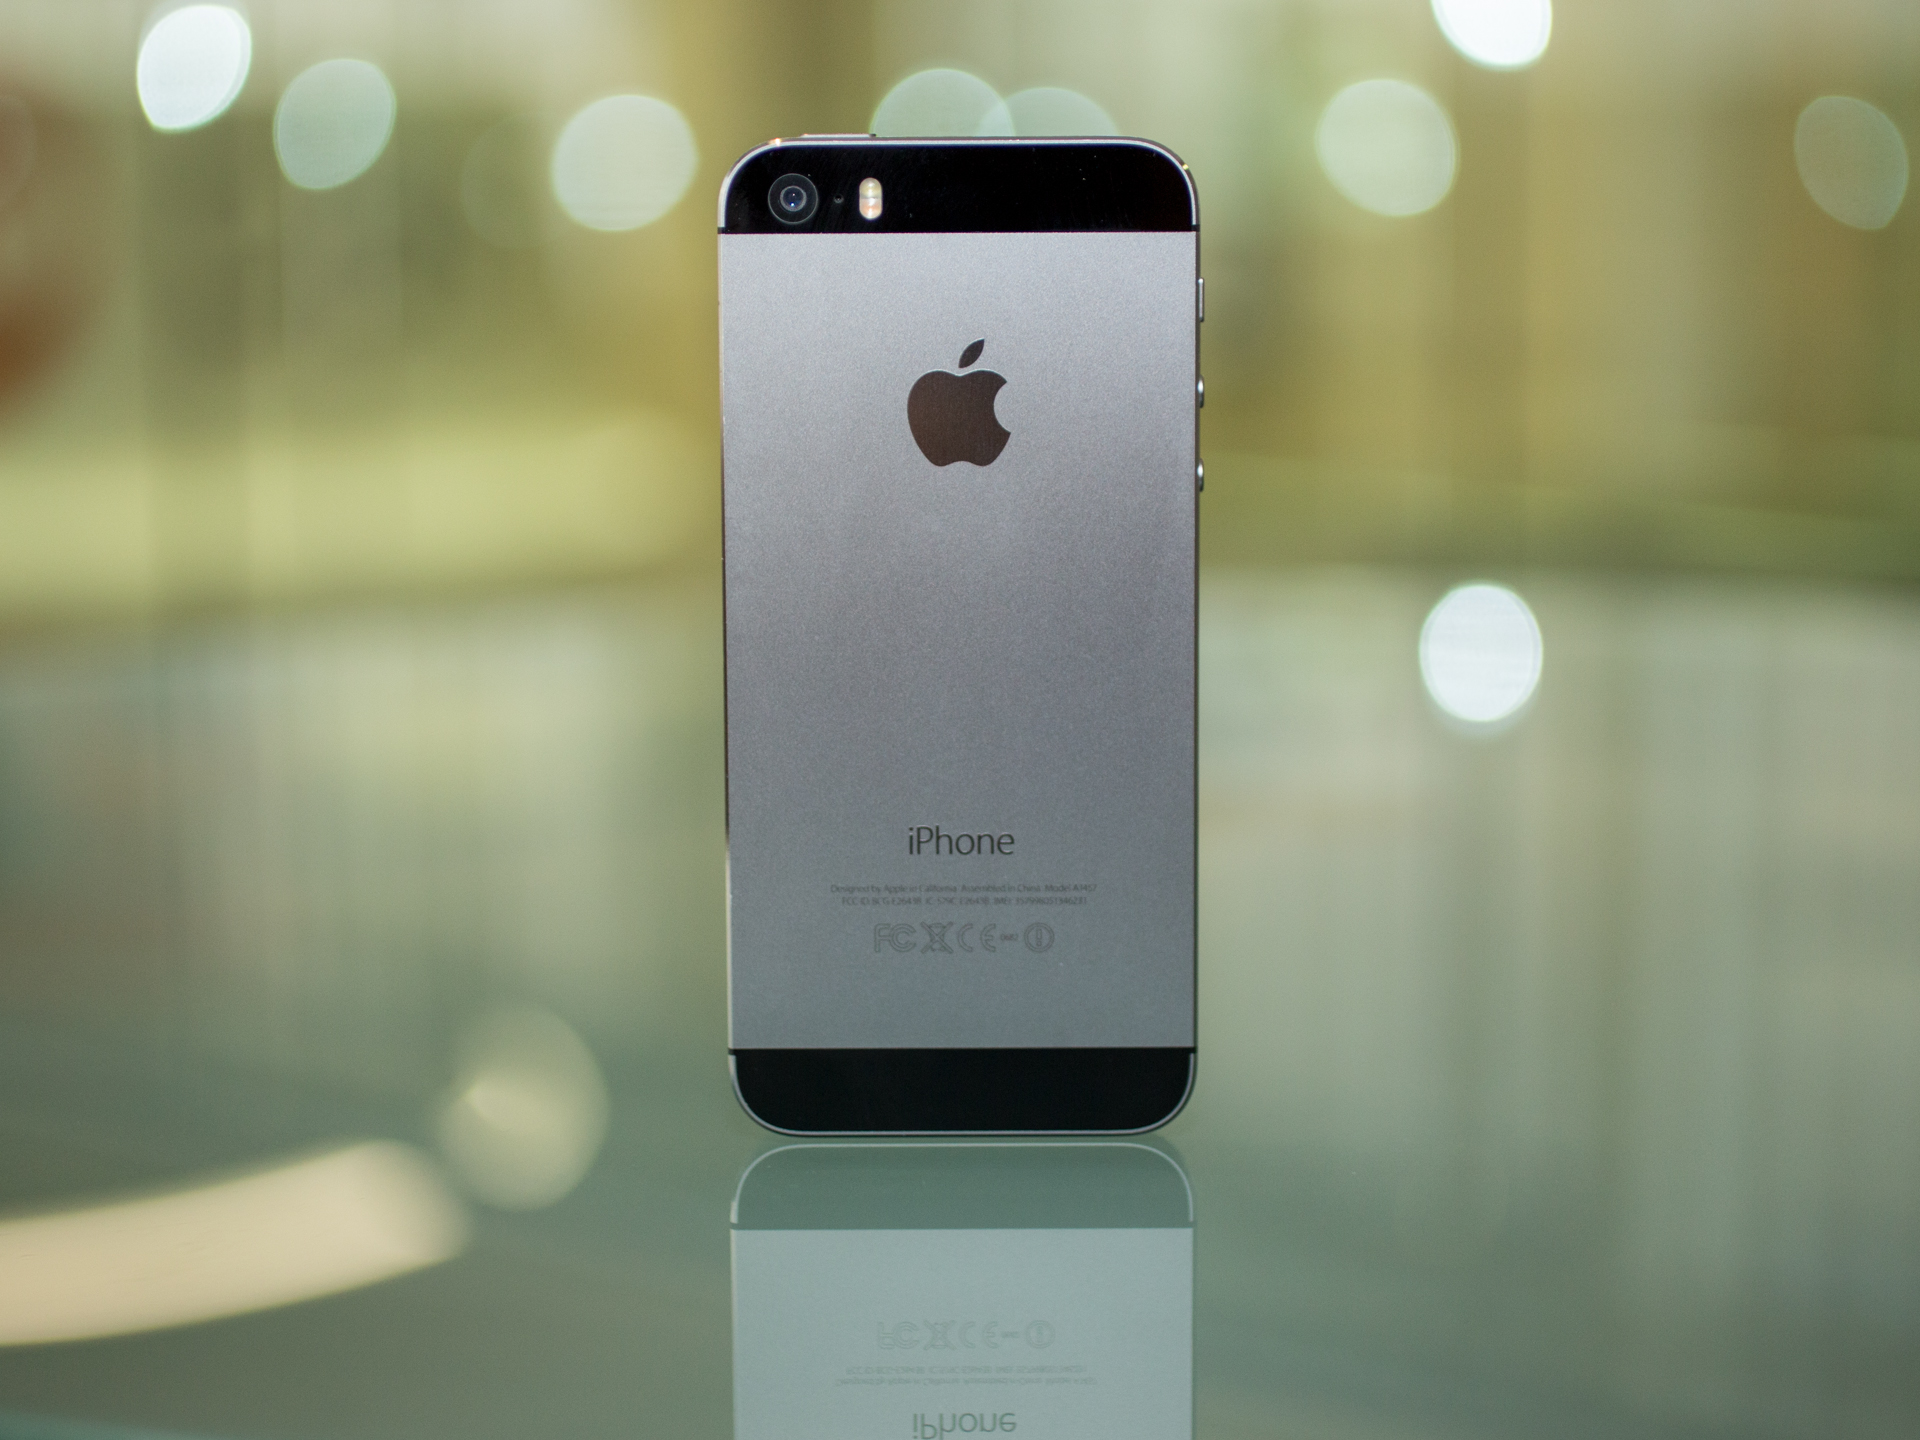 orig-apple-iphone-5s-2.jpg